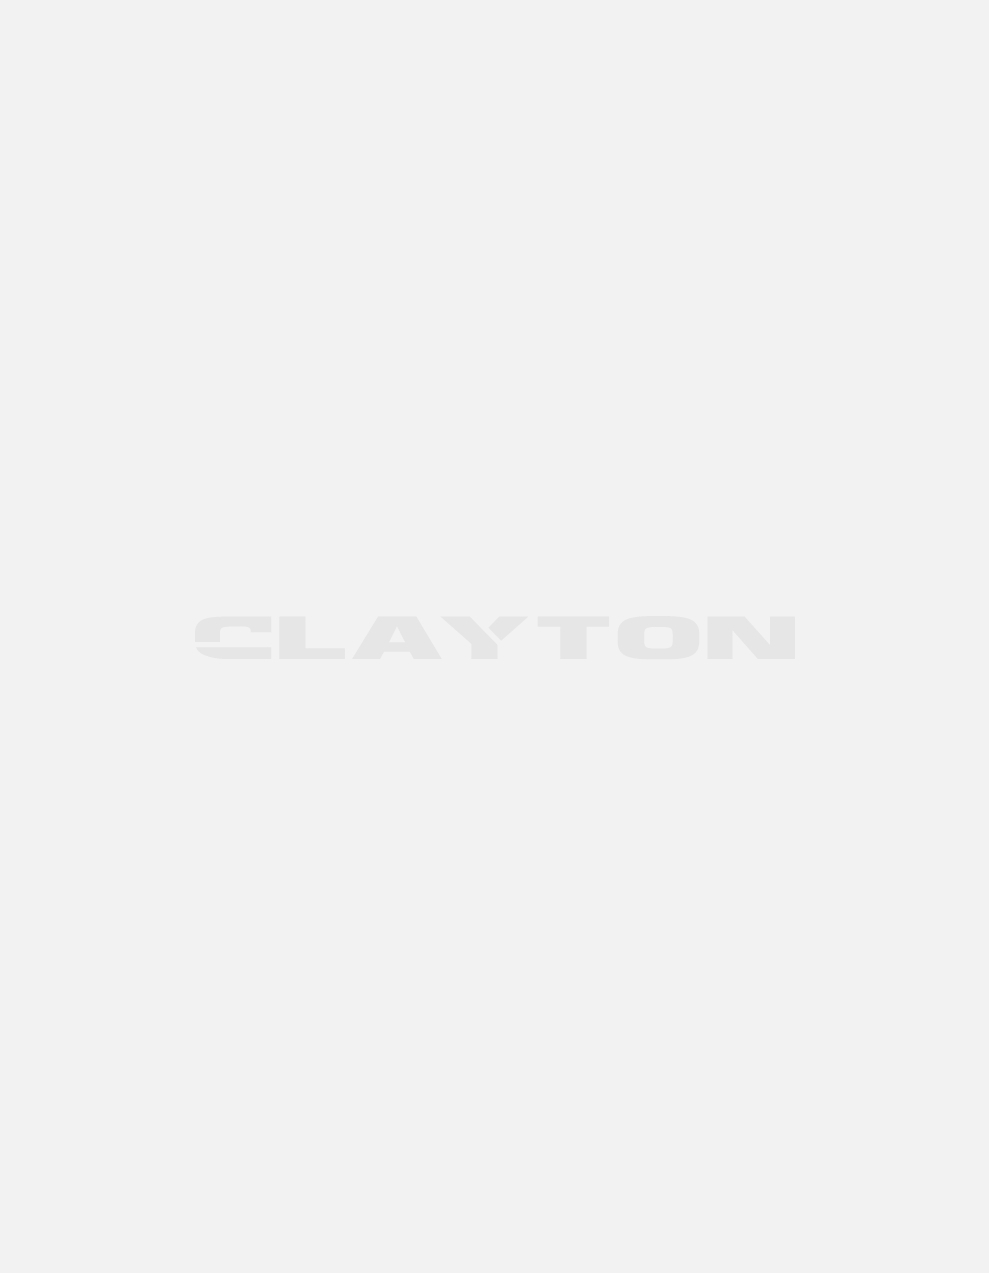 Printed images sweater